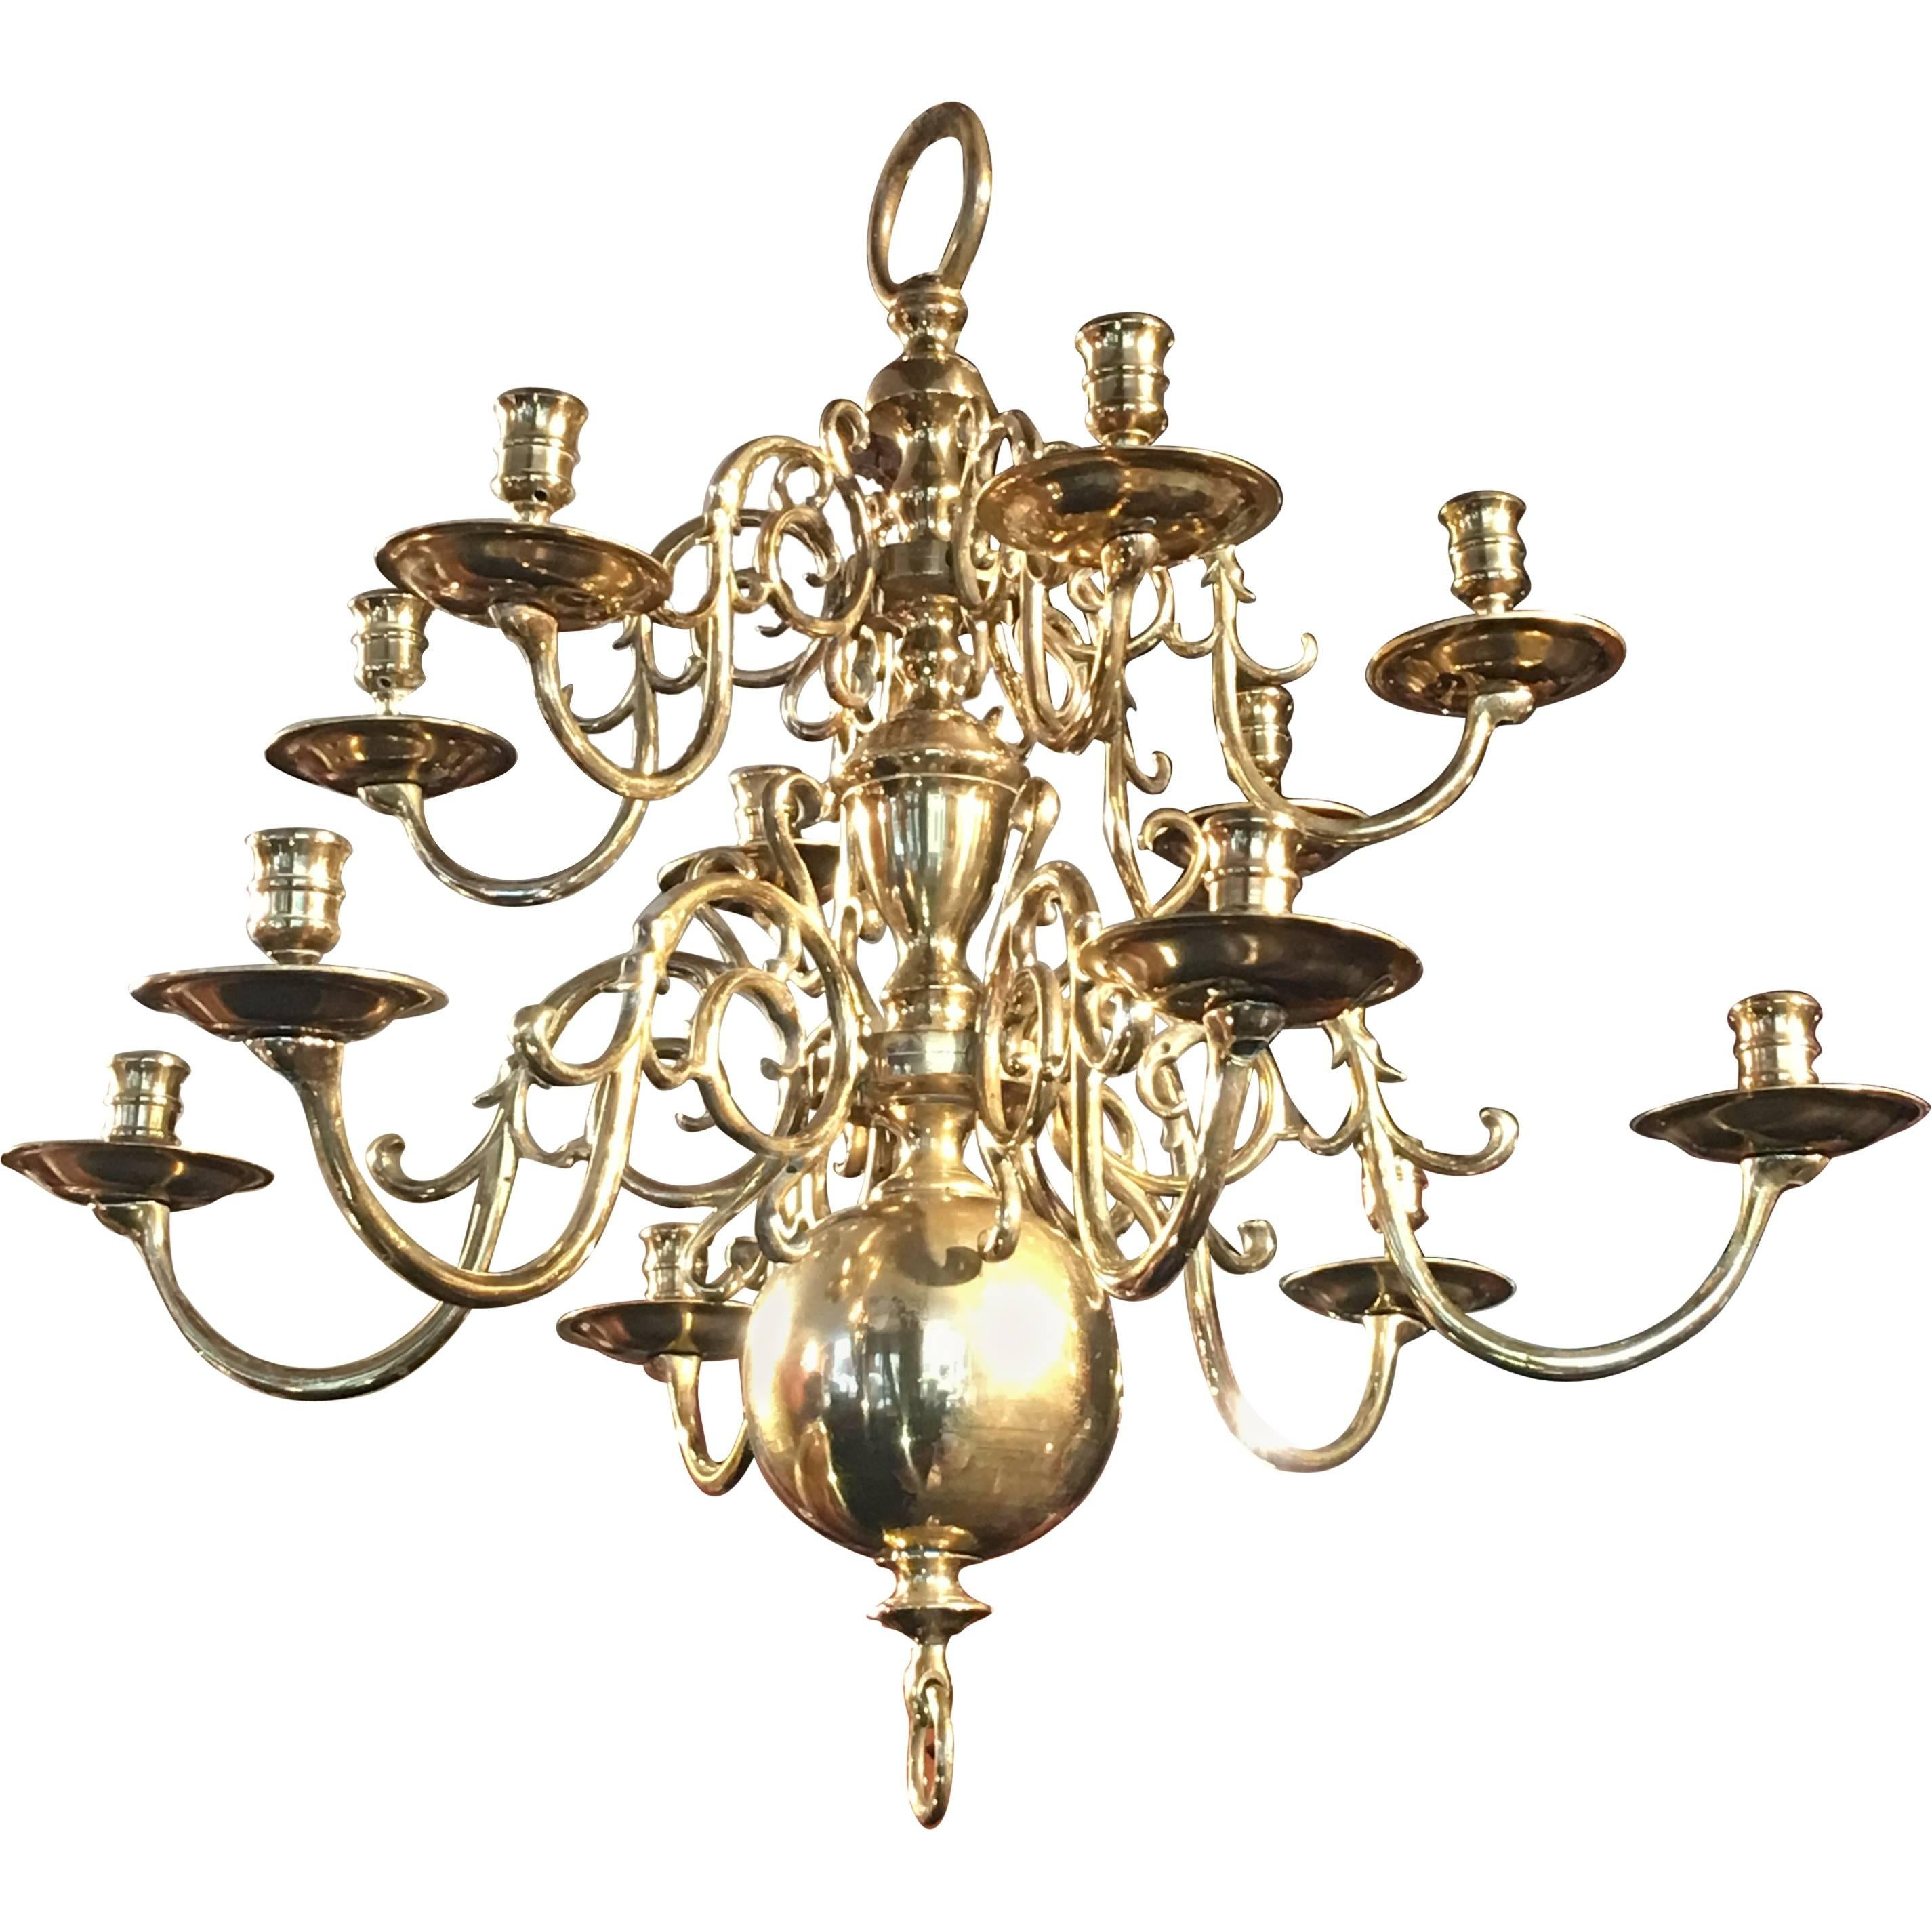 Brass chandelier after a 17th century flemish design for sale at 1stdibs arubaitofo Gallery